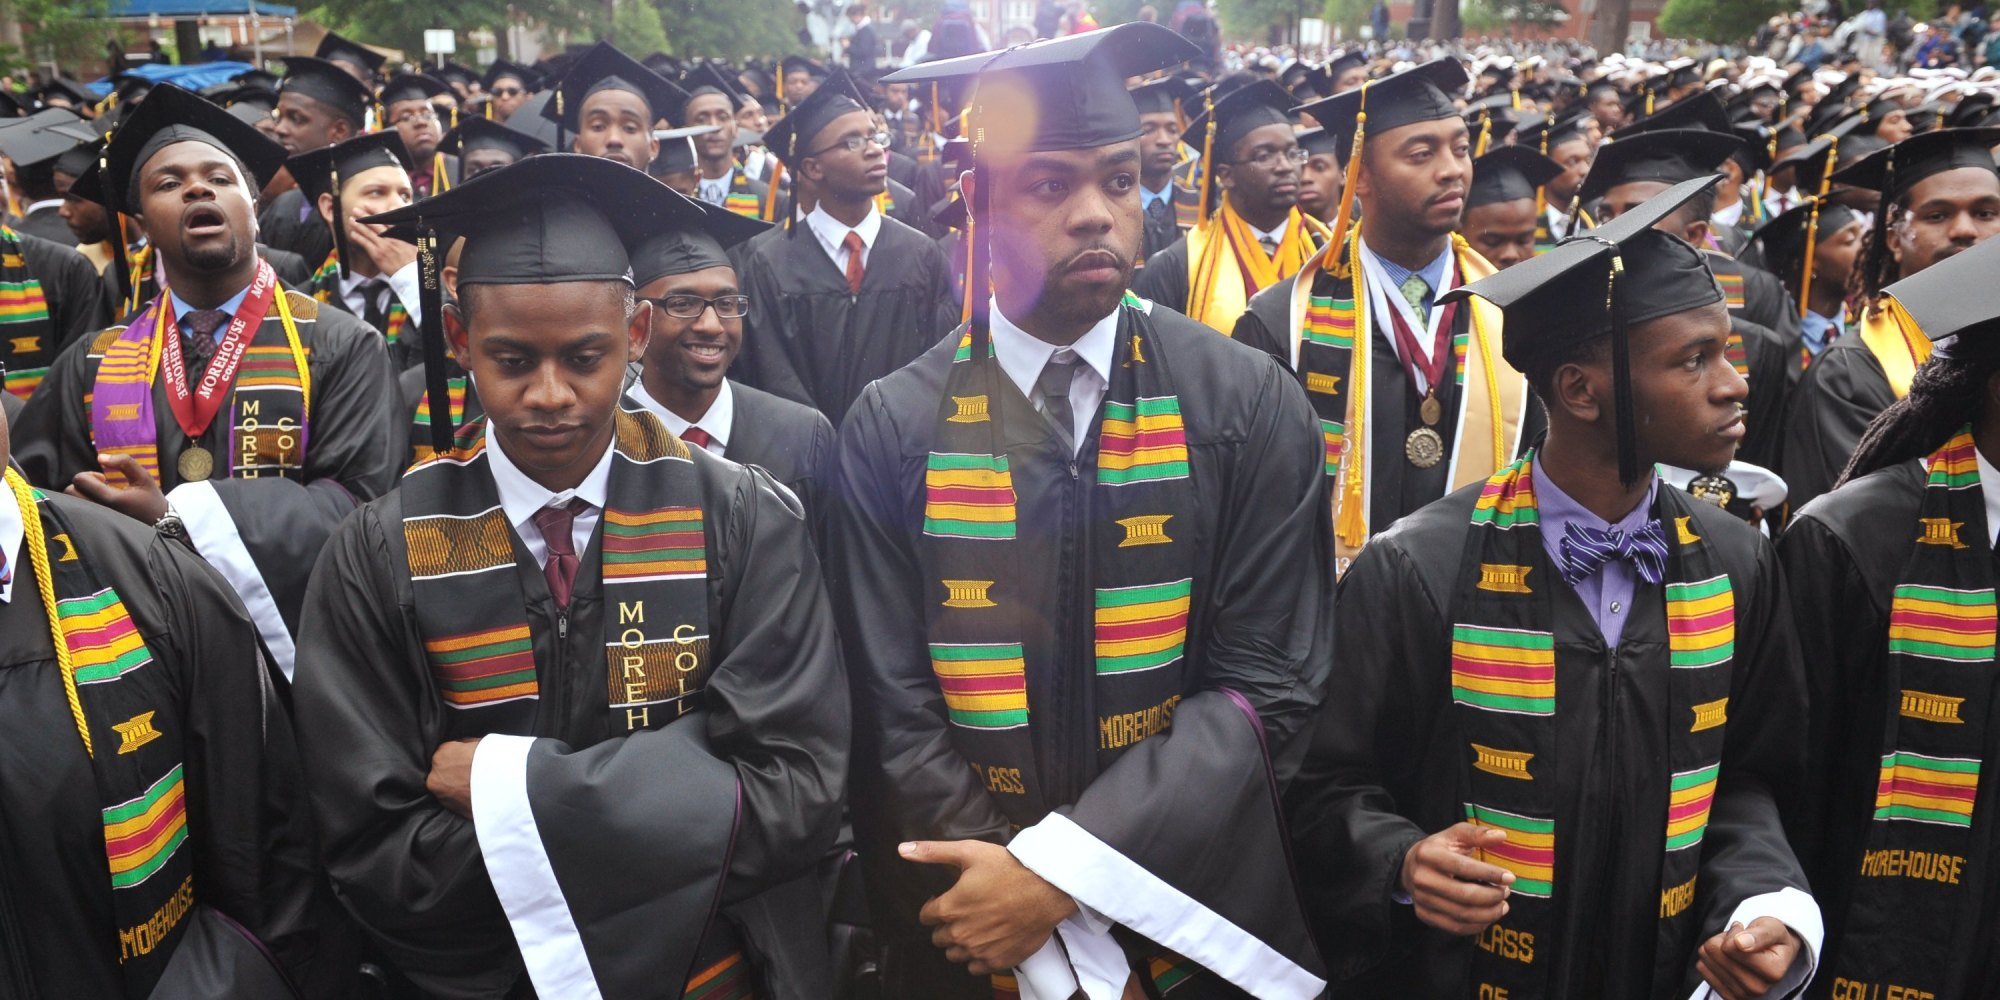 Why are less men graduating college?